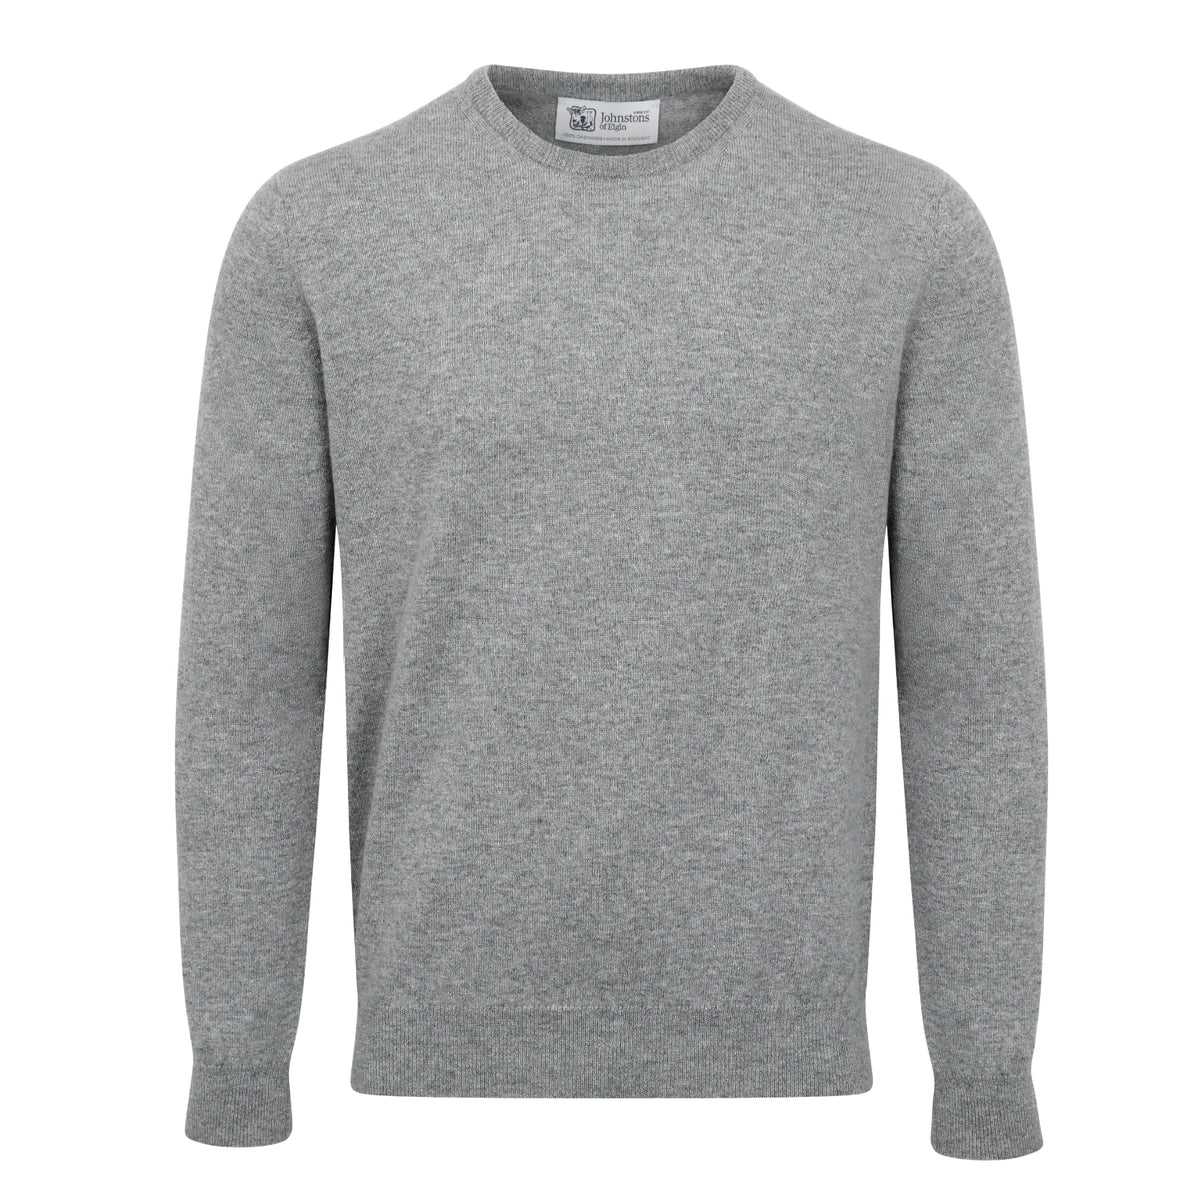 Johnstons of Elgin | Mens 2-Ply Cashmere Round Neck | Light Grey | Shop now at The Cashmere Choice | London